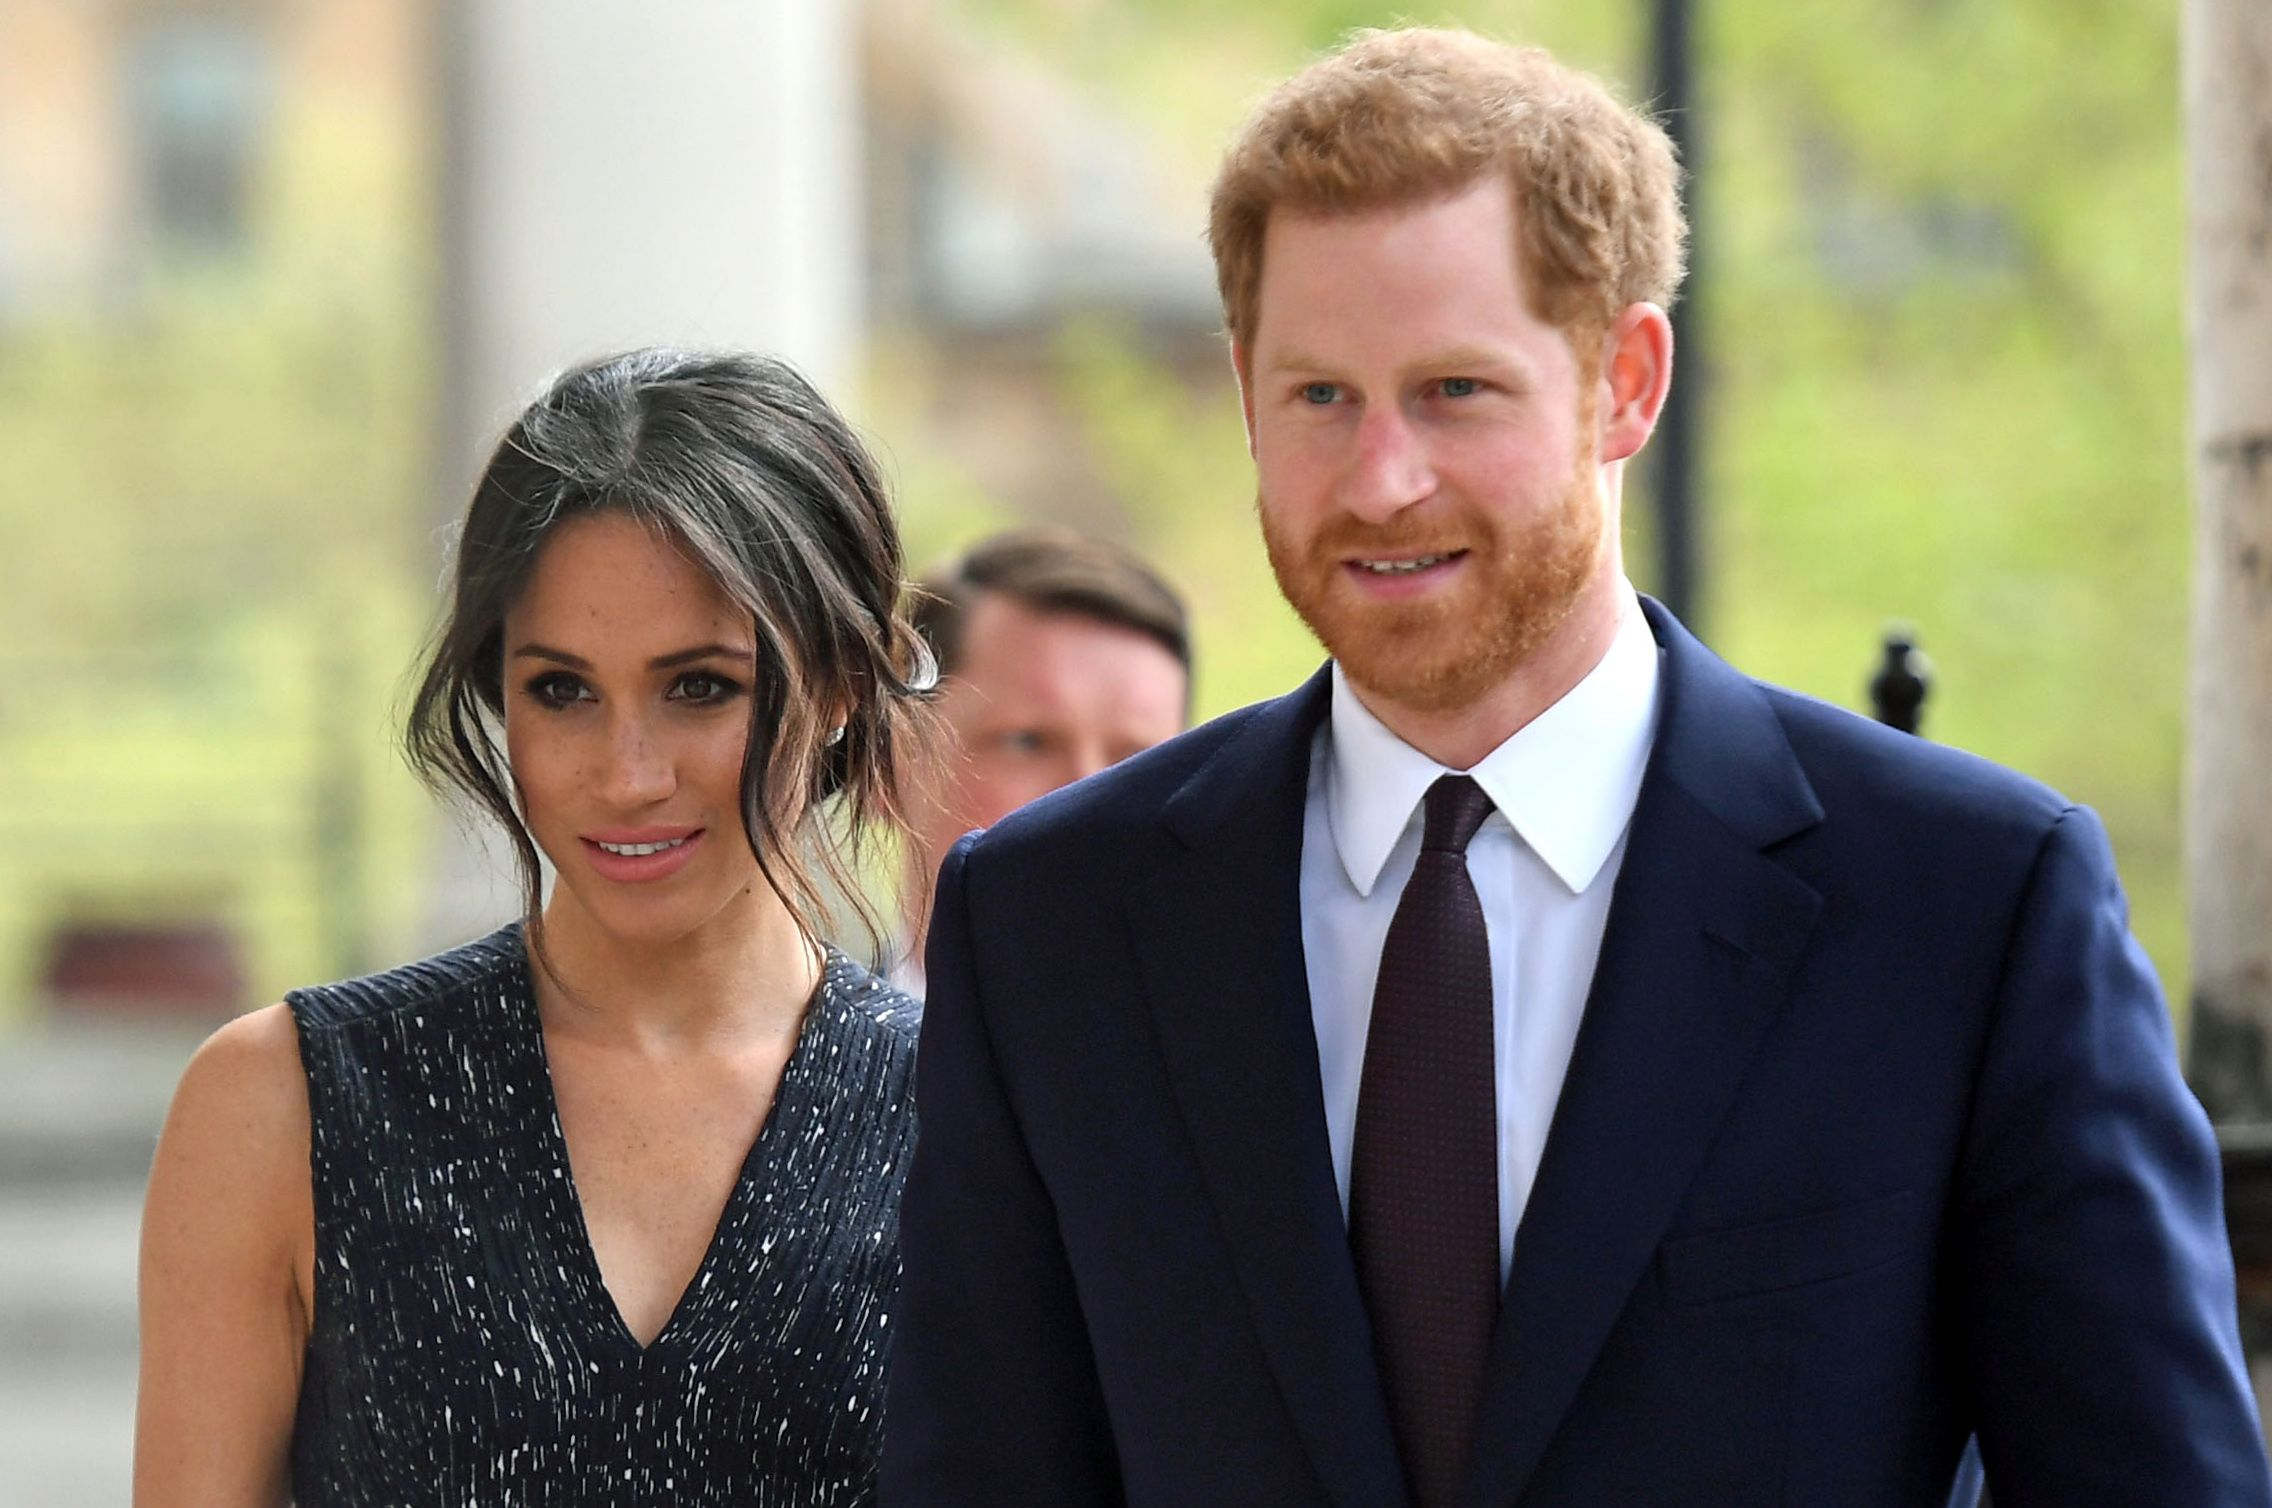 Prince Harry and Meghan Markle Are Being Dragged for Taking Private Jets